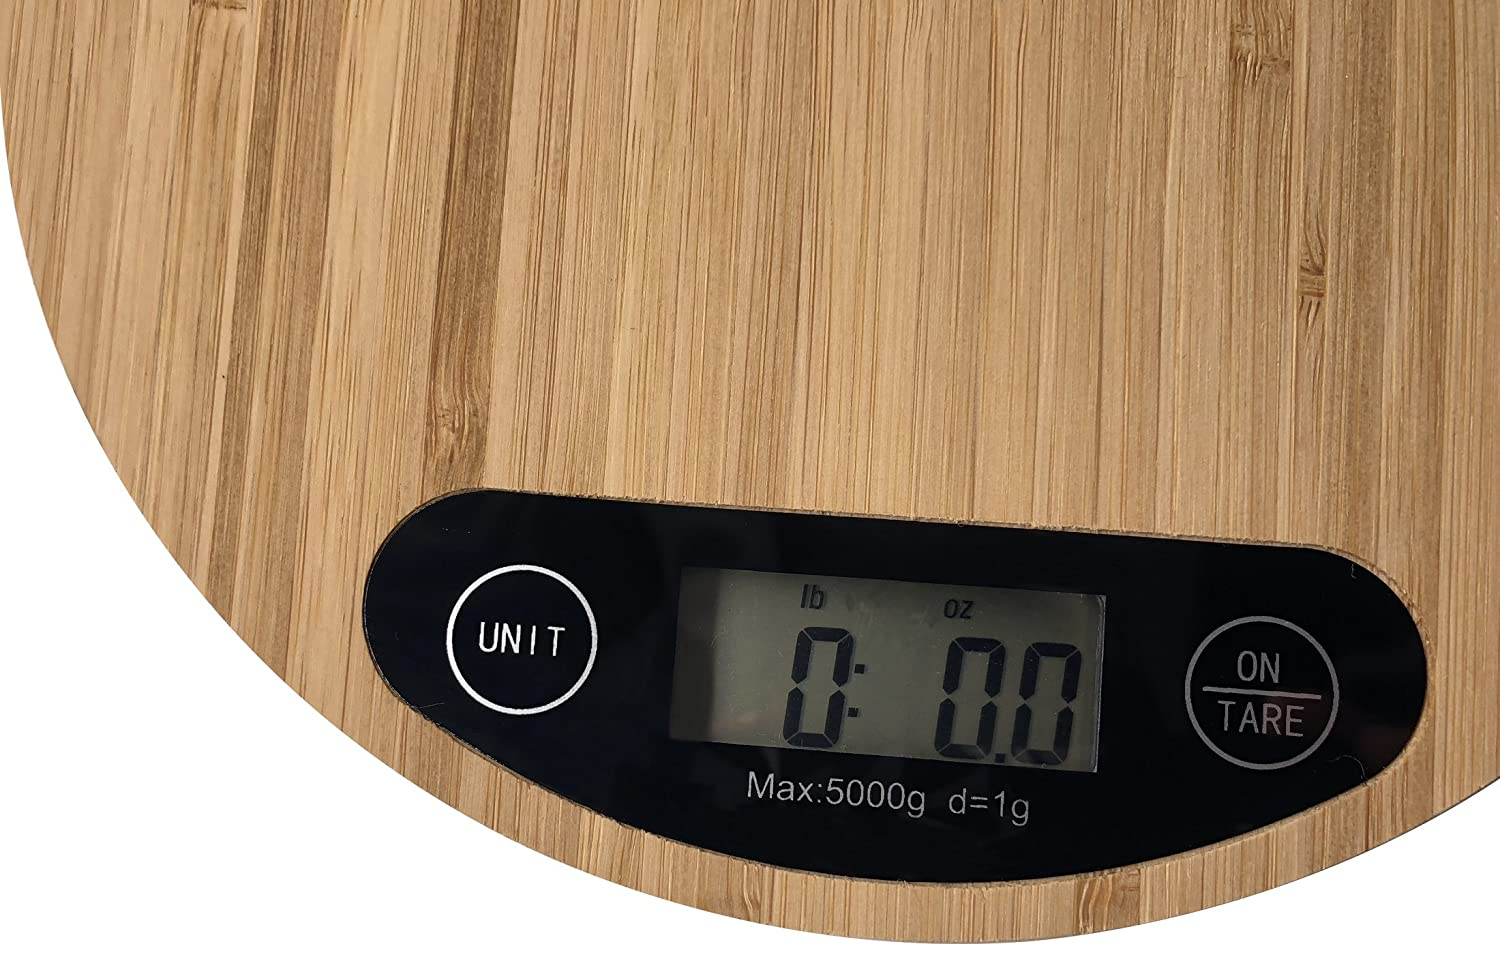 OSVINO Digital Compact Kitchen Food Scale Eco-friendly Bamboo Platform Accurate Weight Measurement 5kg/11lbs with 1g/0.002lbs Precision, Rectangle